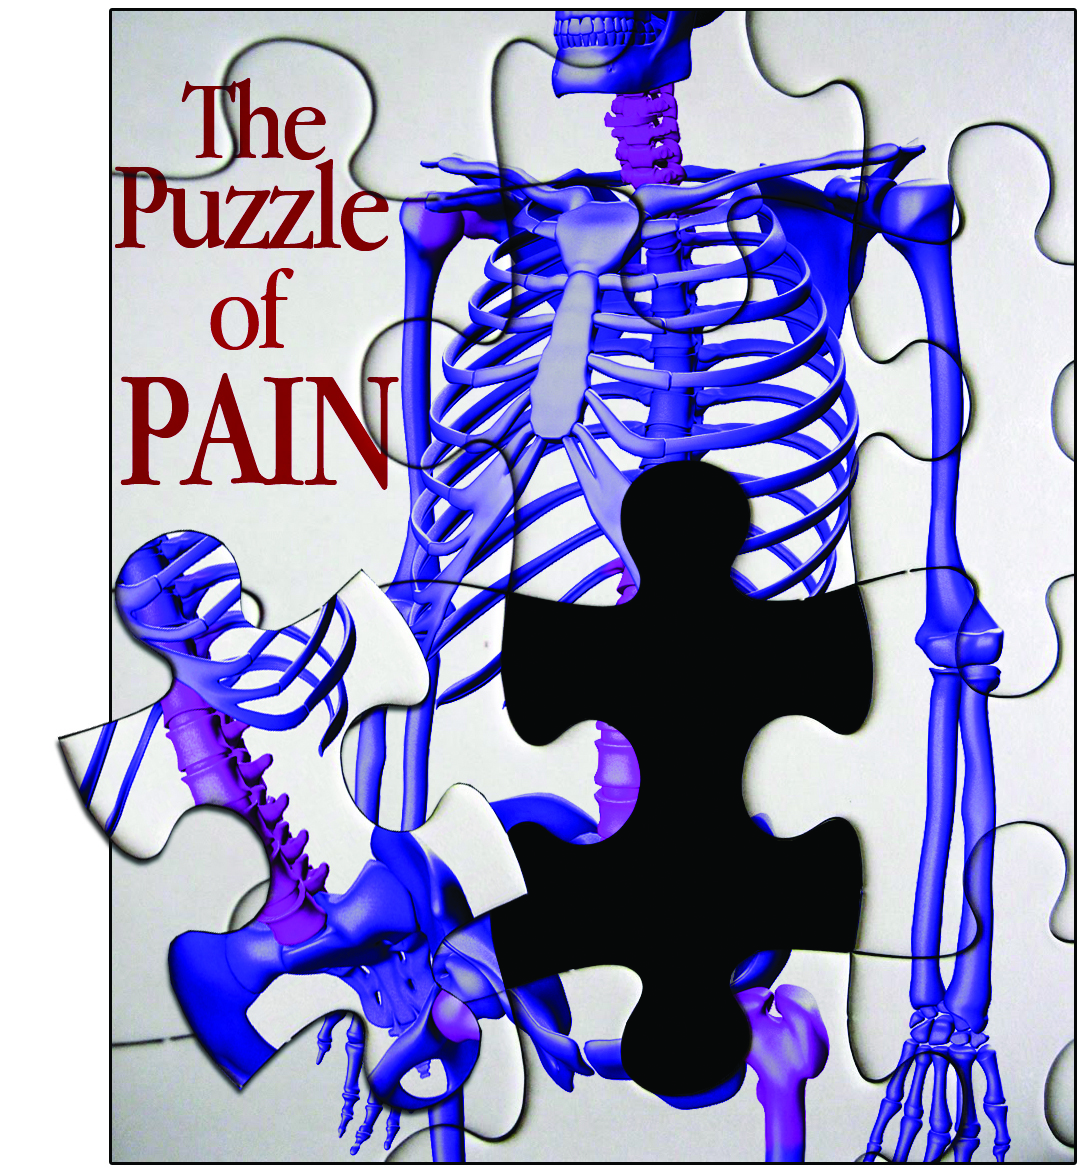 The Puzzle of Pain 150319-F-FC540-029